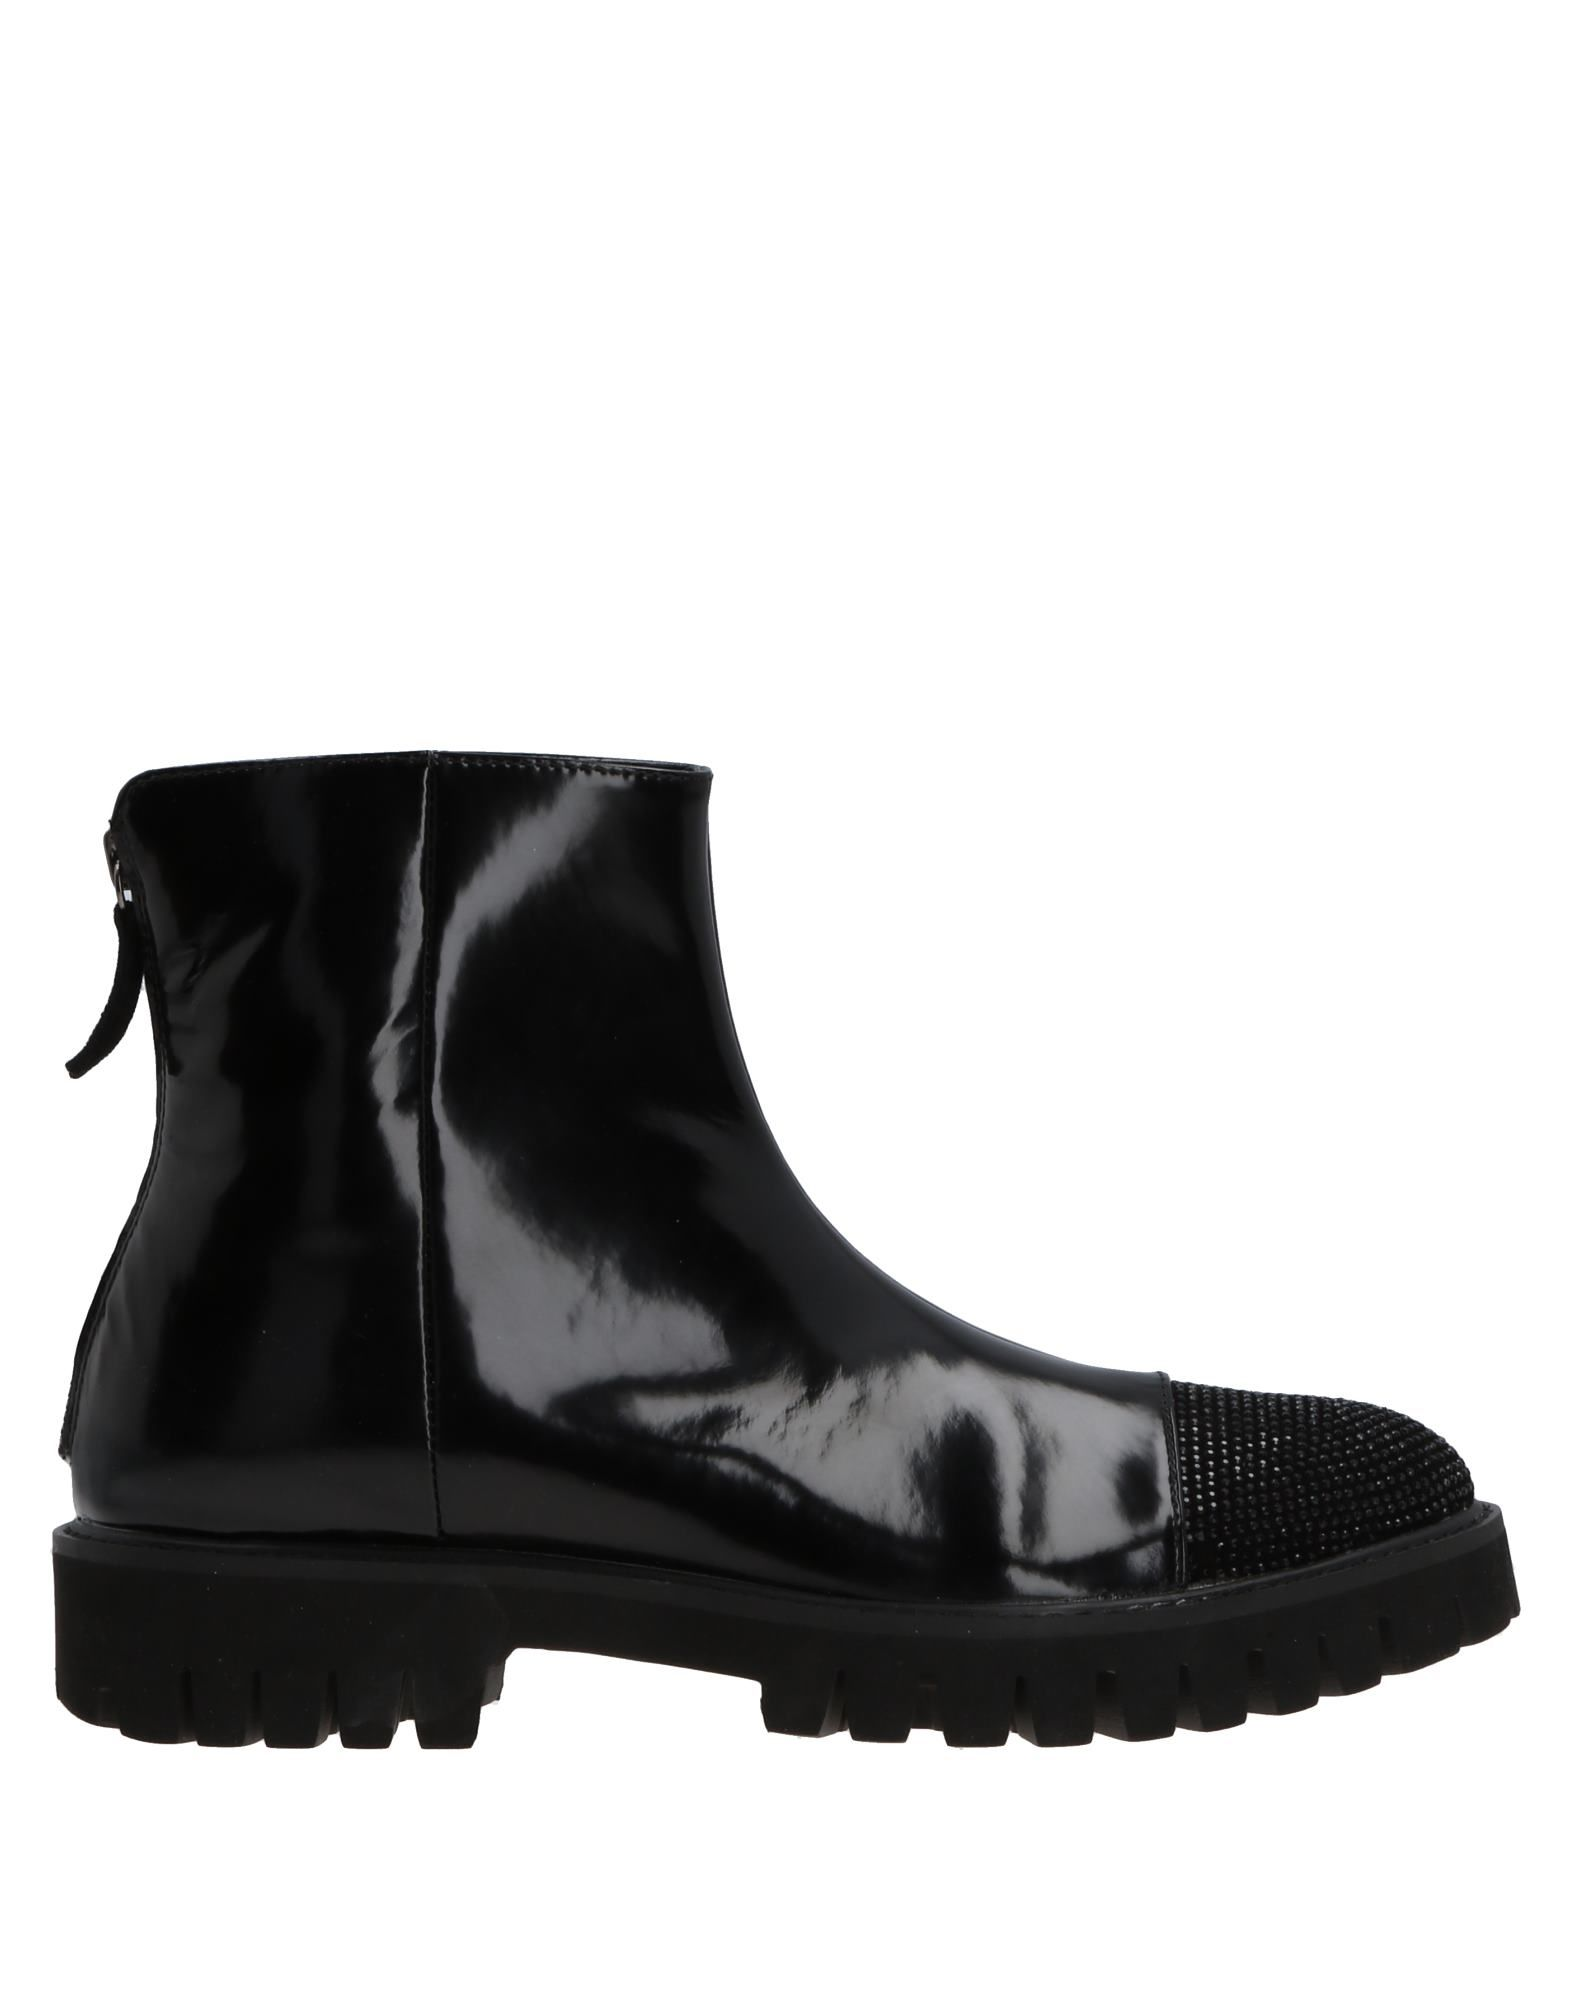 Bibi Bibi Bibi Lou Ankle Boot - Women Bibi Lou Ankle Boots online on  United Kingdom - 11522860MW 35e604